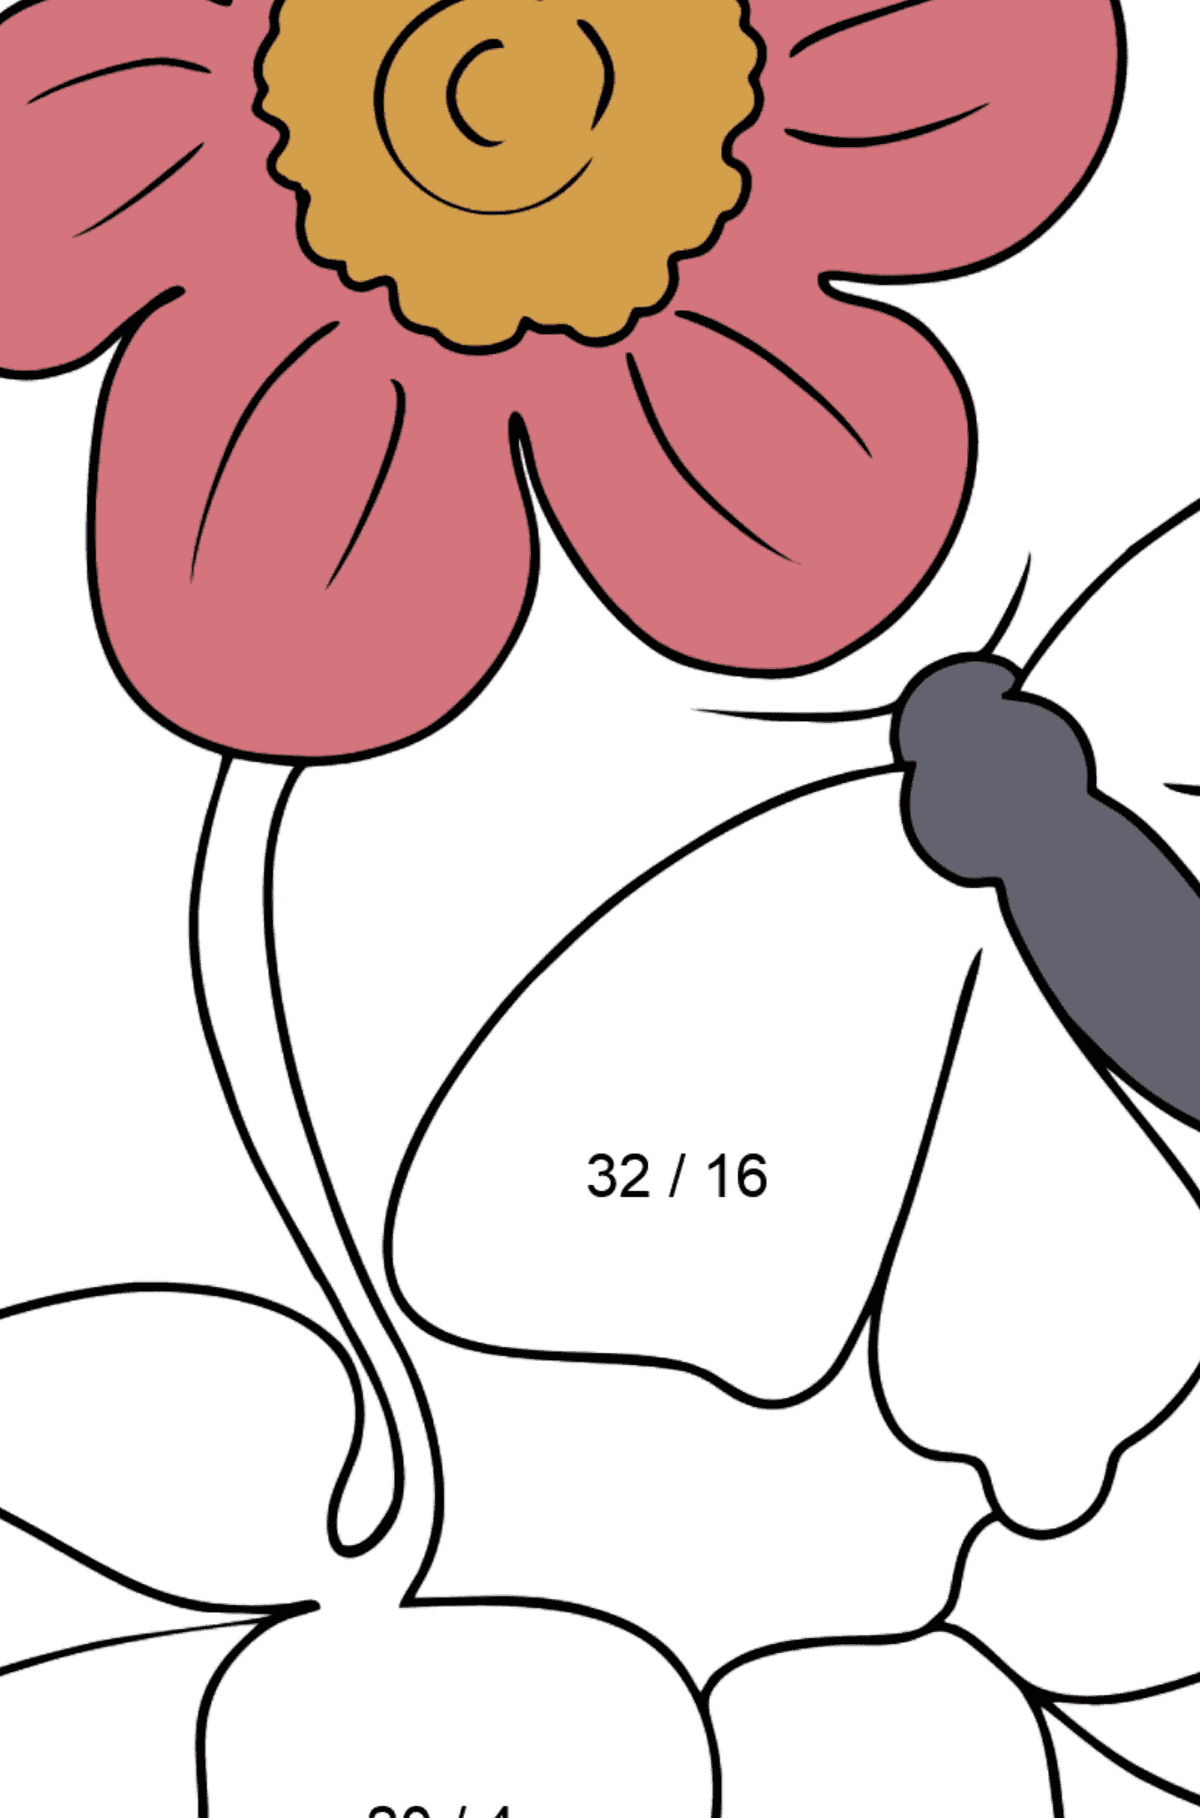 Coloring Page - flowers and butterfly - Math Coloring - Division for Kids